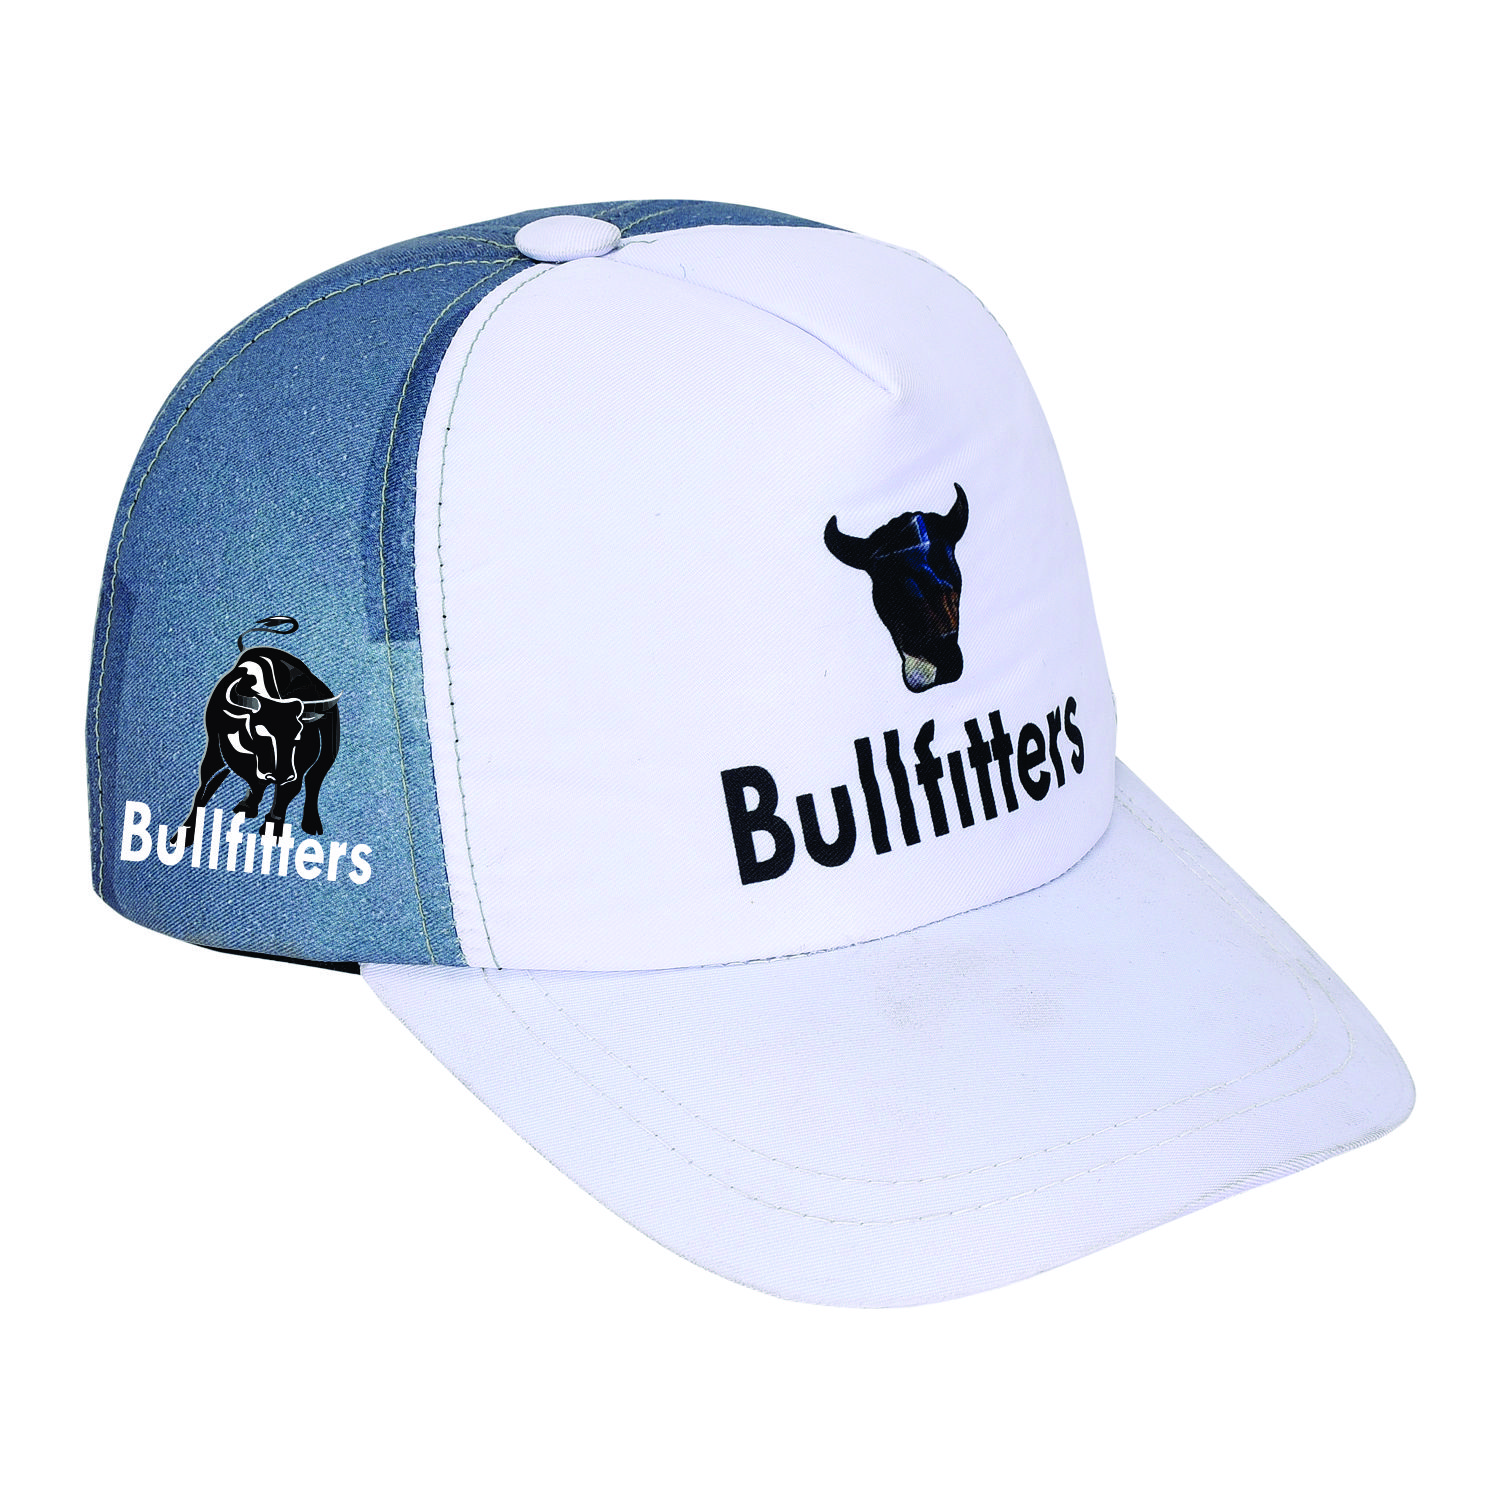 Bullfitters New Arrival Cap For Men Cap For Men Stylish Caps For Boys Winter Cap Sports Hat Visor Cap Baseball Cap Race High Performance Running/Outdoor Sports Hat Autumn Cap - Sublimated Cap With Strap For Winter